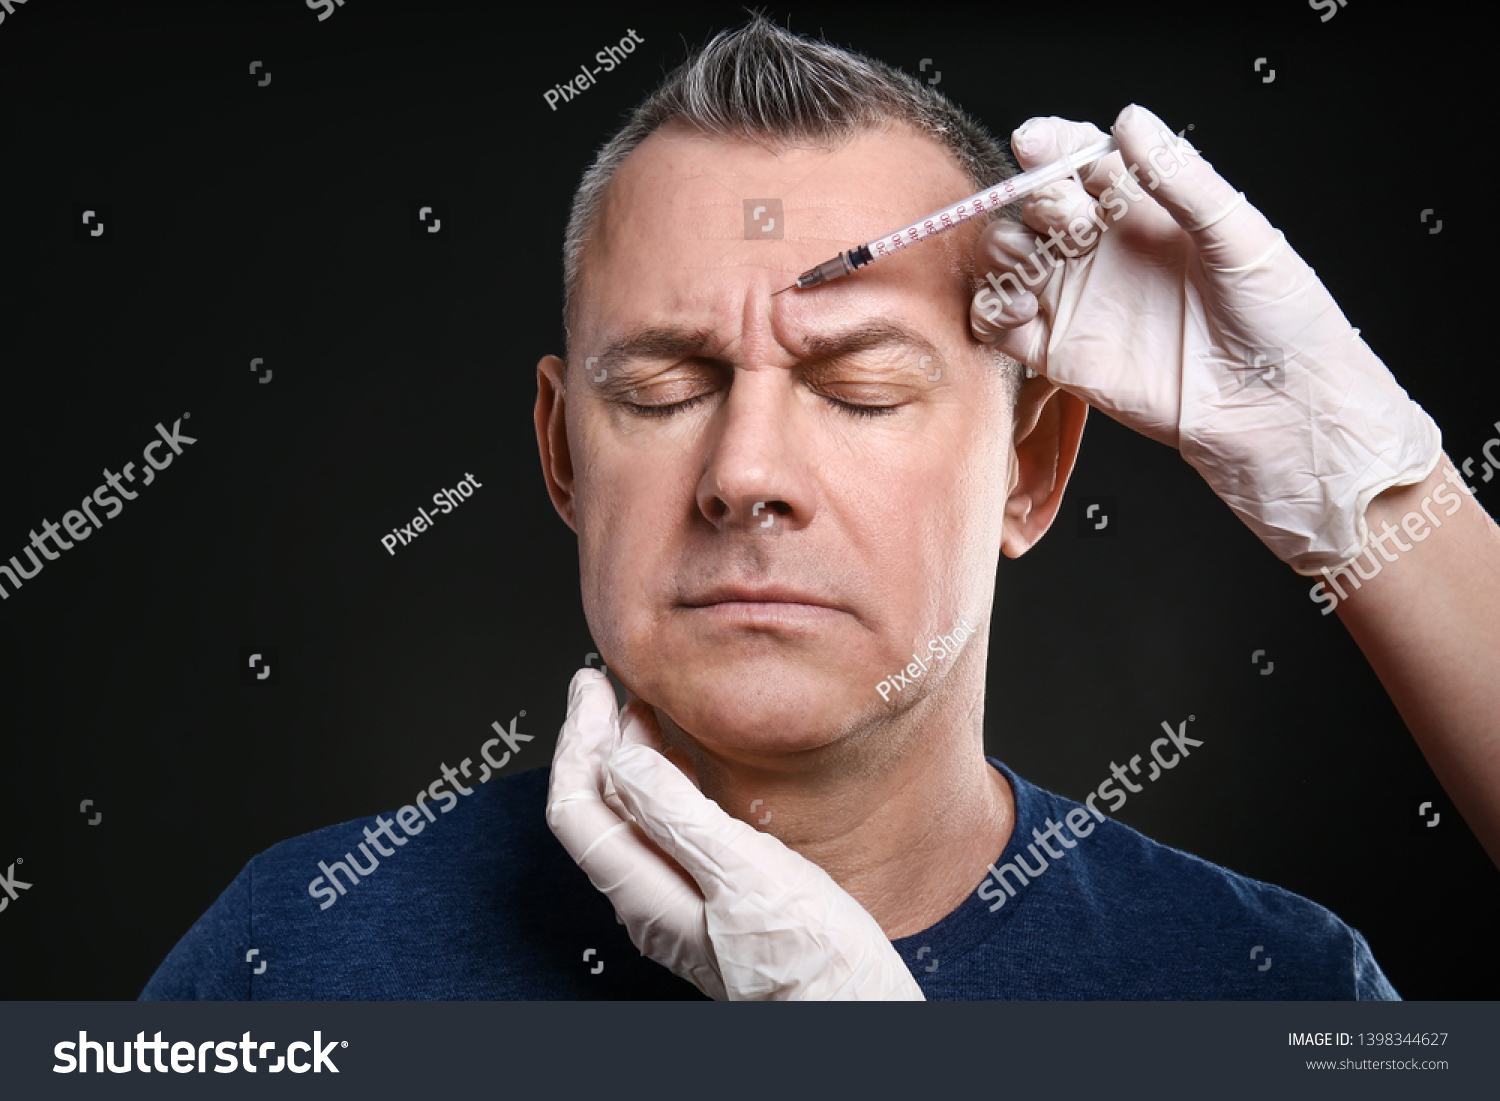 Middle-aged man and hands holding syringe for anti-aging injections on dark background #1398344627